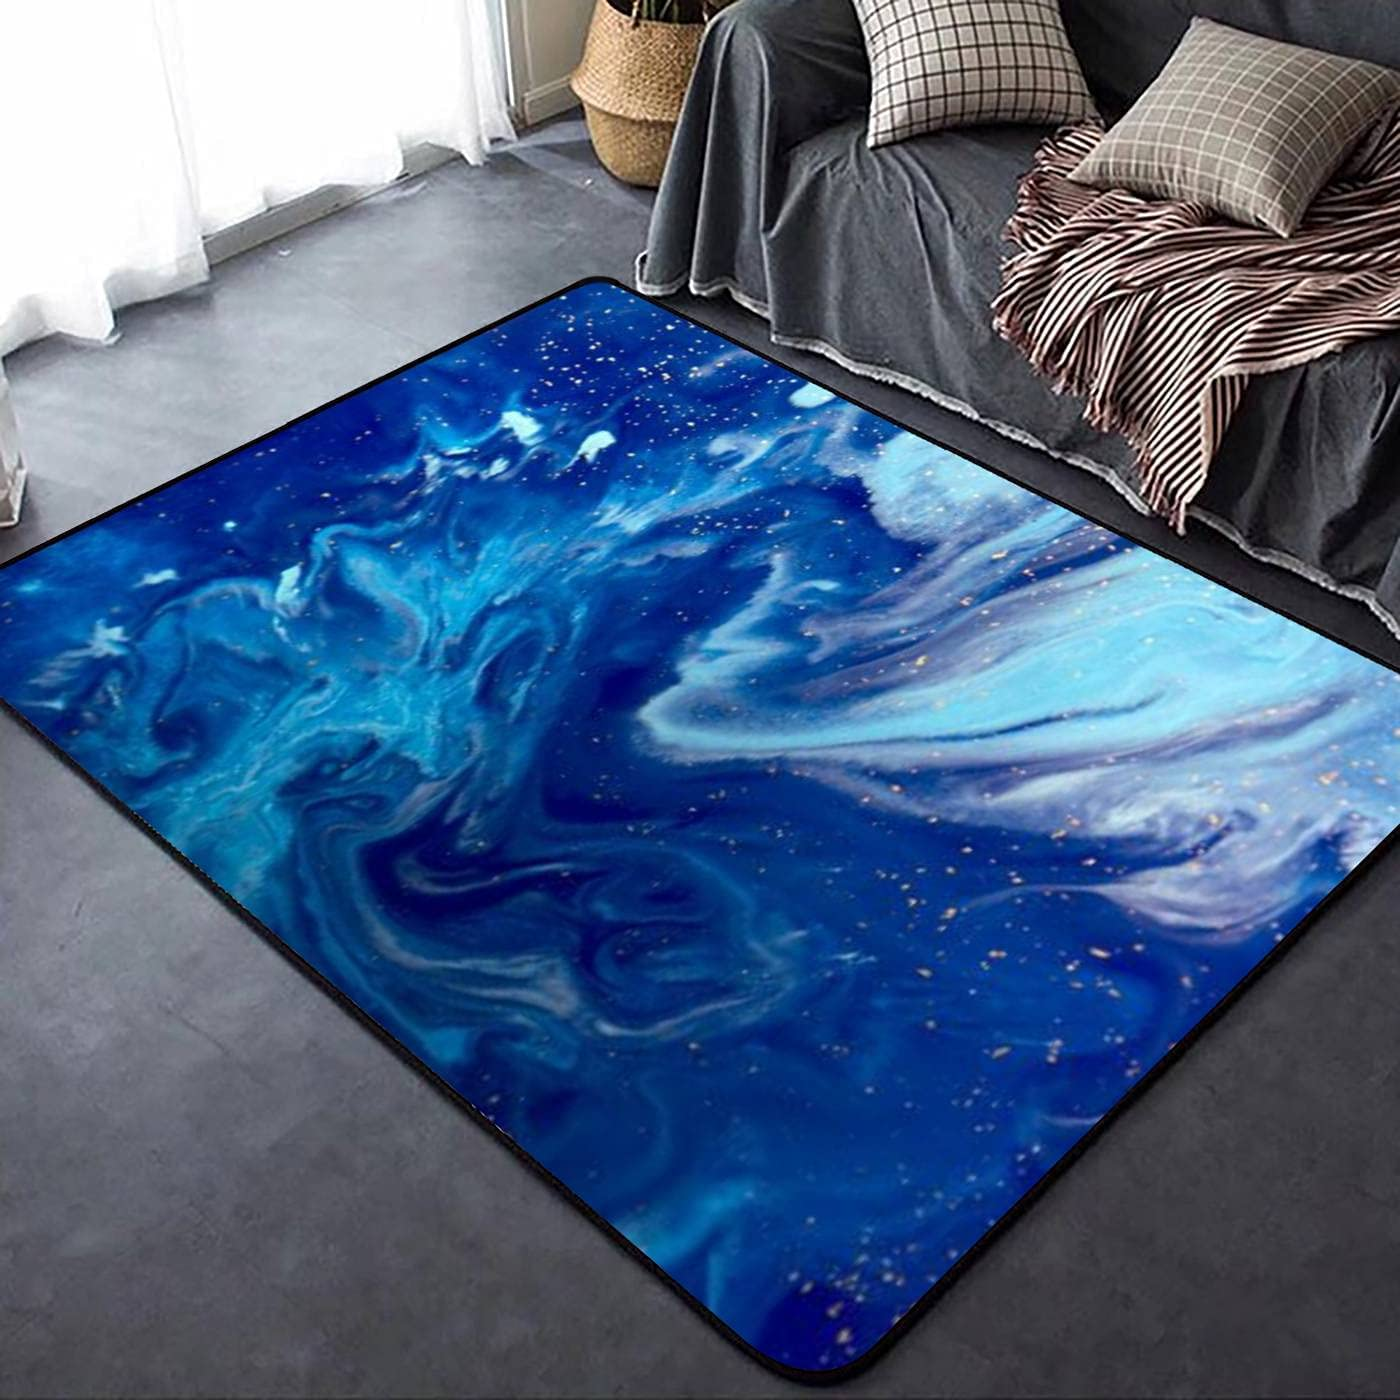 Marbled Blue Abstract Golden Max 42% OFF Sequins Rugs Marble Liquid Soft Ink Superior